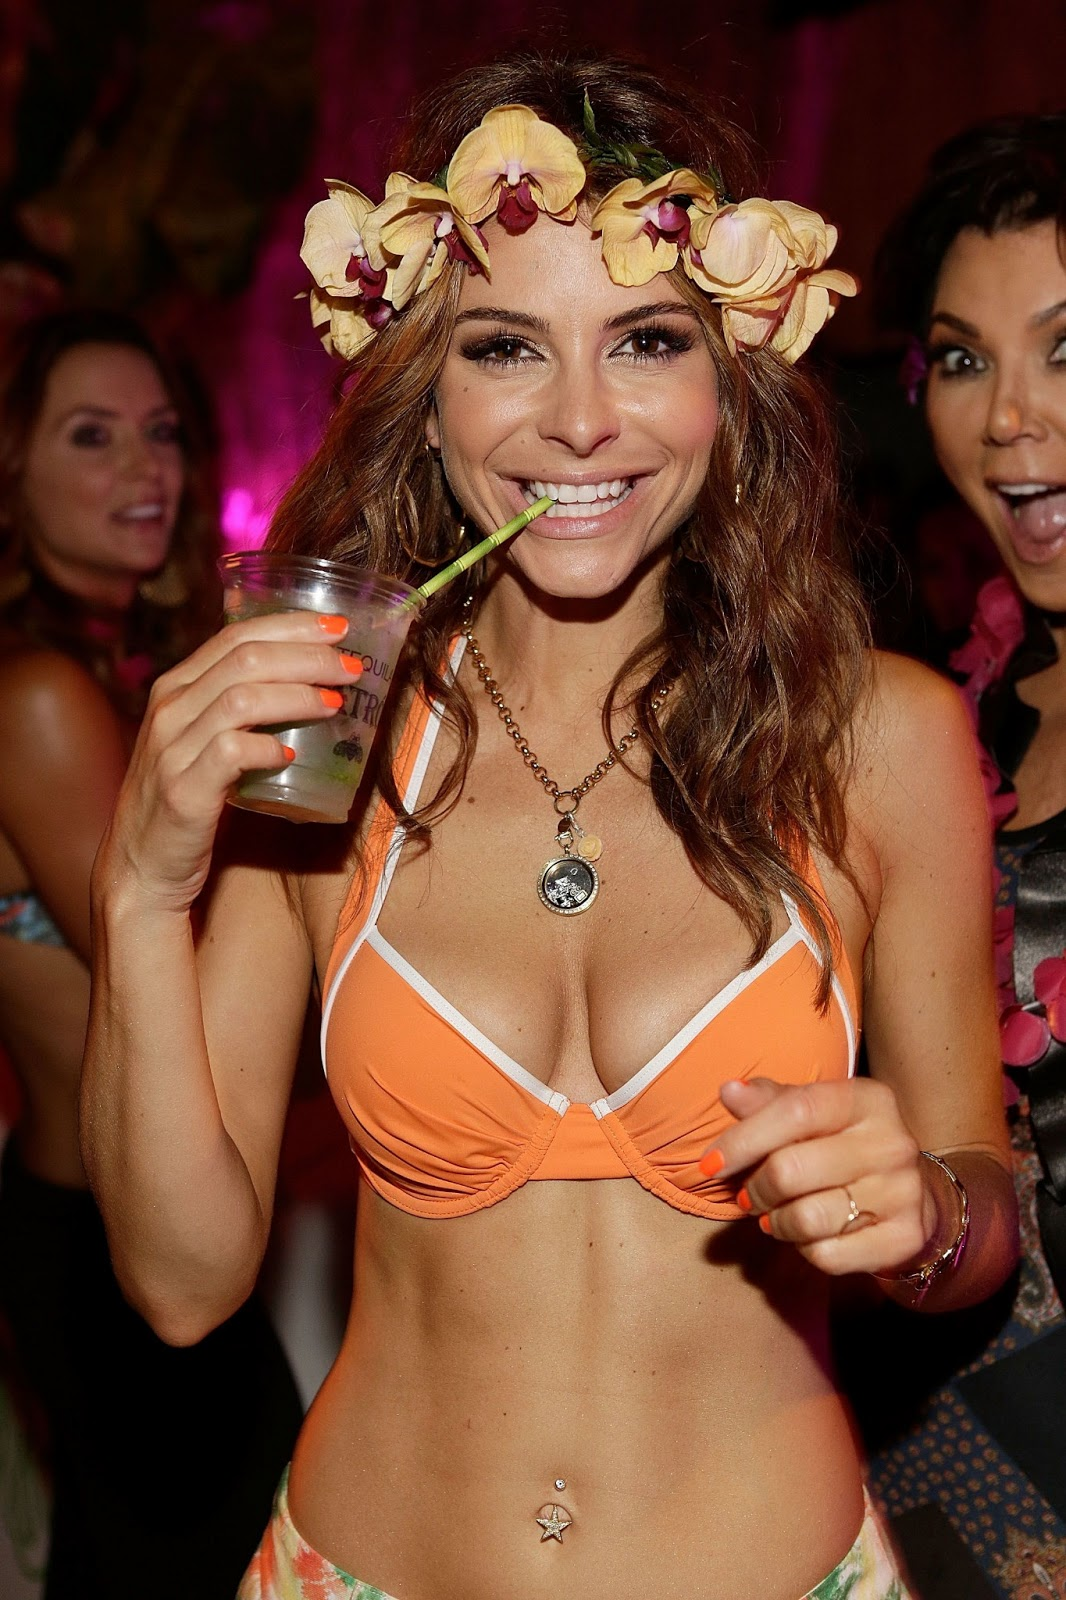 http://3.bp.blogspot.com/-0kHqKd17yLA/UbZYqAXTUmI/AAAAAAAAgkI/DS_n9CBsalQ/s1600/Maria+Menounos+-+wearing+orange+bikini+top+at+her+35th+birthday+party+in+LA+-++June+2013+-03.jpg